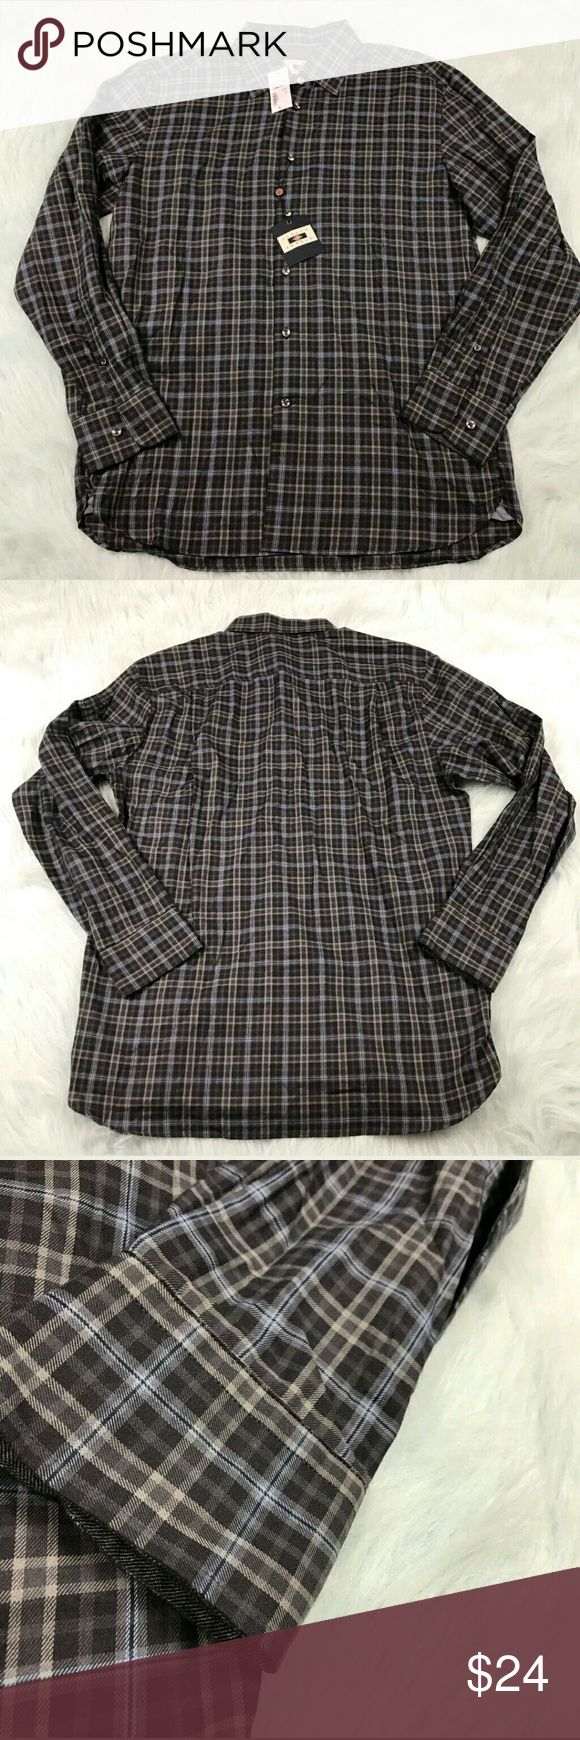 """Joseph Abboud Plaid Shirt Button Down Joseph Abboud gray blue plaid button front long sleeve shirt. Mens size Large. New with tags. See pictures for details.  Armpit to Armpit - 22"""" Length - 30""""  Inventory 04262017 Joseph Abboud Shirts"""